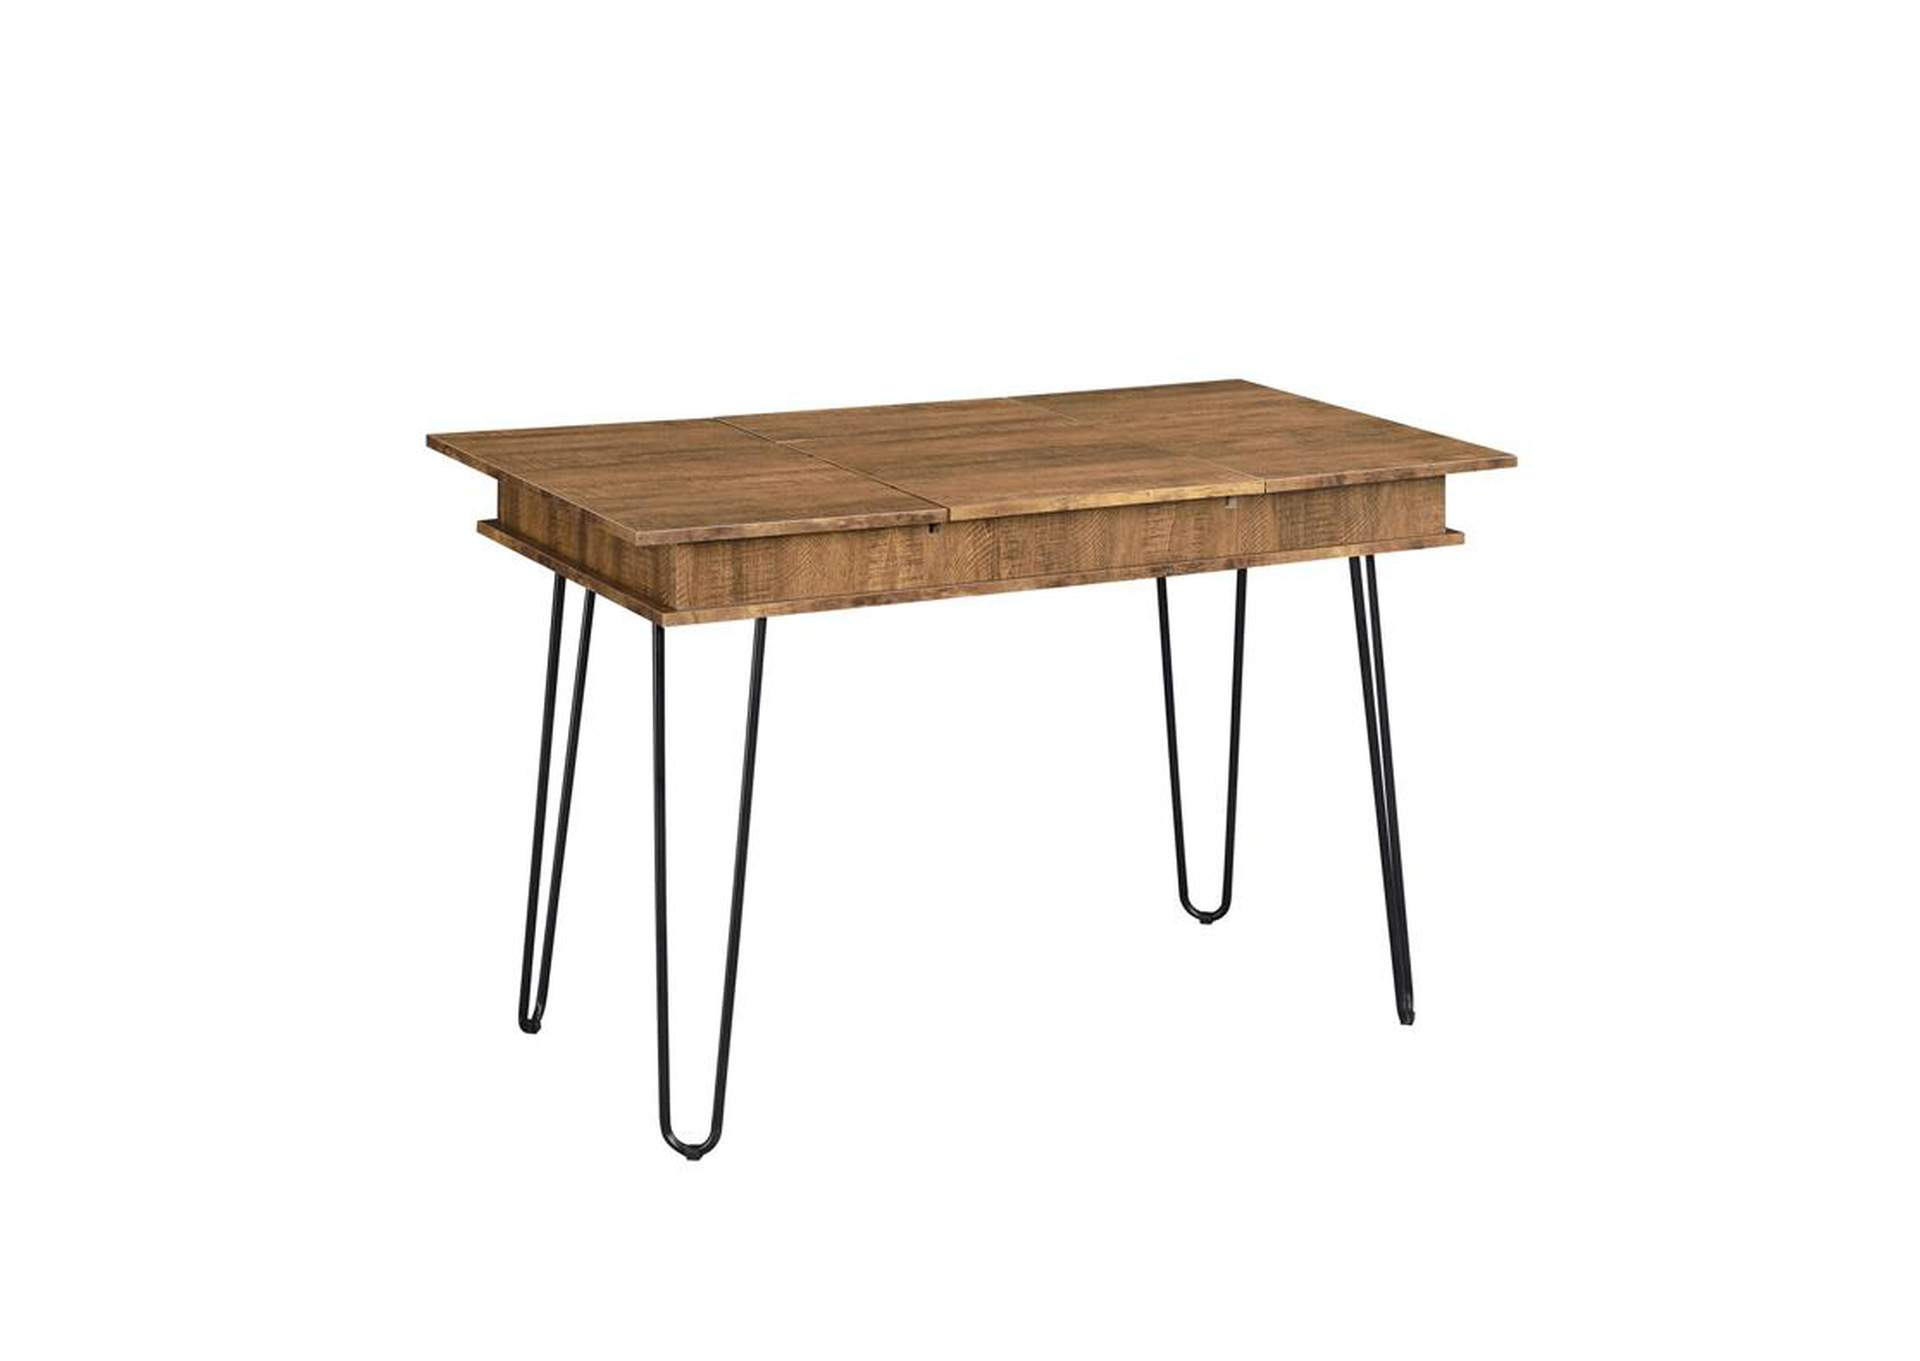 Rustic Amber Sheeran Rustic Amber Writing Desk,Coaster Furniture